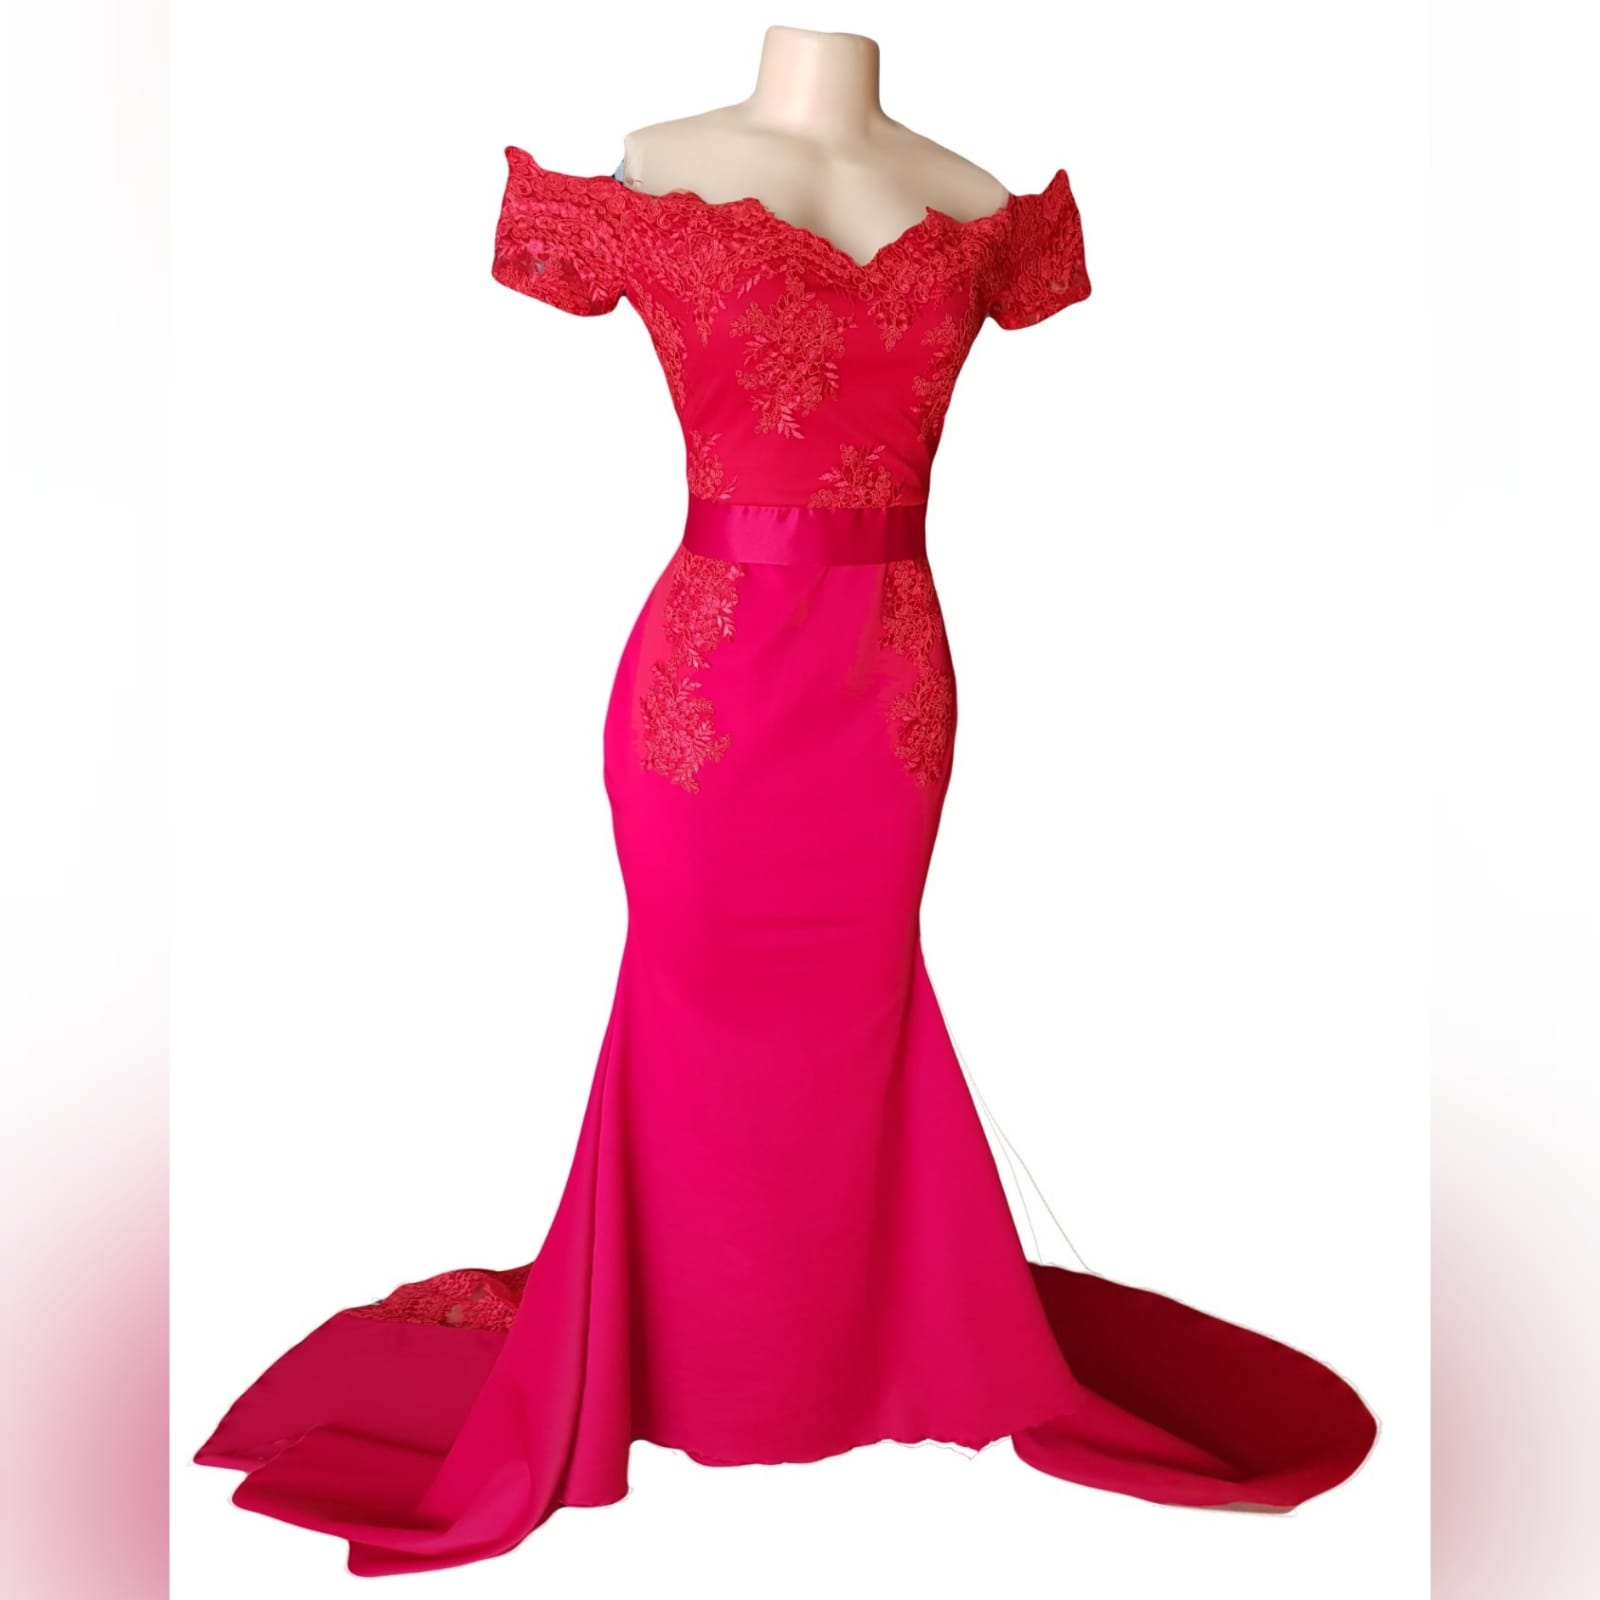 Gorgeous red soft mermaid dress 6 <blockquote><em>you don't have to play masculine to be a strong woman. – mary elizabeth winstead</em></blockquote> a gorgeous red soft mermaid dress created for my client's special event. A dress that turns heads, due to its amazing colour, elegance and sophistication. An off shoulder neckline with off shoulder cap sleeves in lace, with button detail running down the back. A satin belt accentuates the waistline. A wide sheer lace train to add a sensual and dramatic look to the dress.